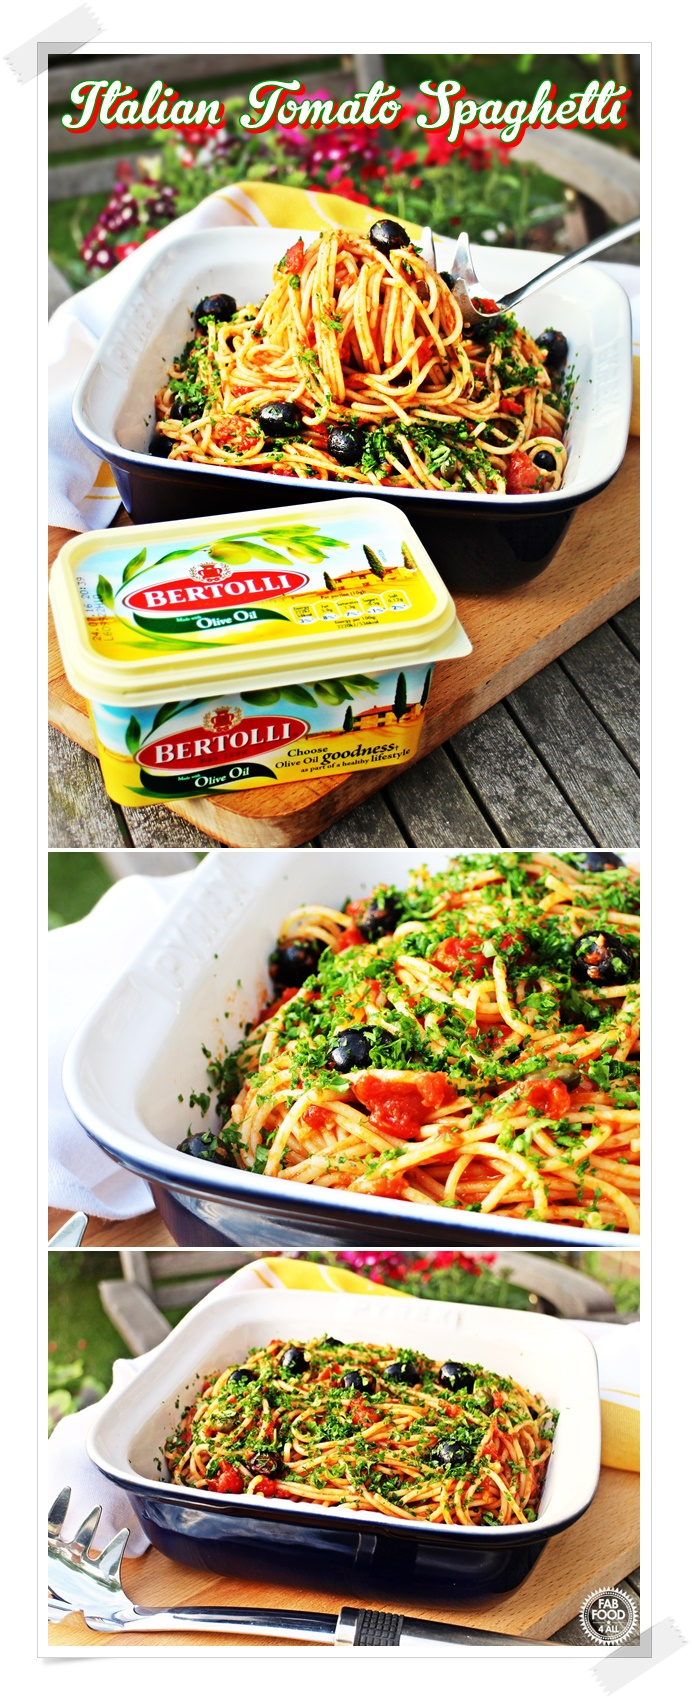 Italian Tomato Spaghetti with Bertolli - Fab Food 4 All